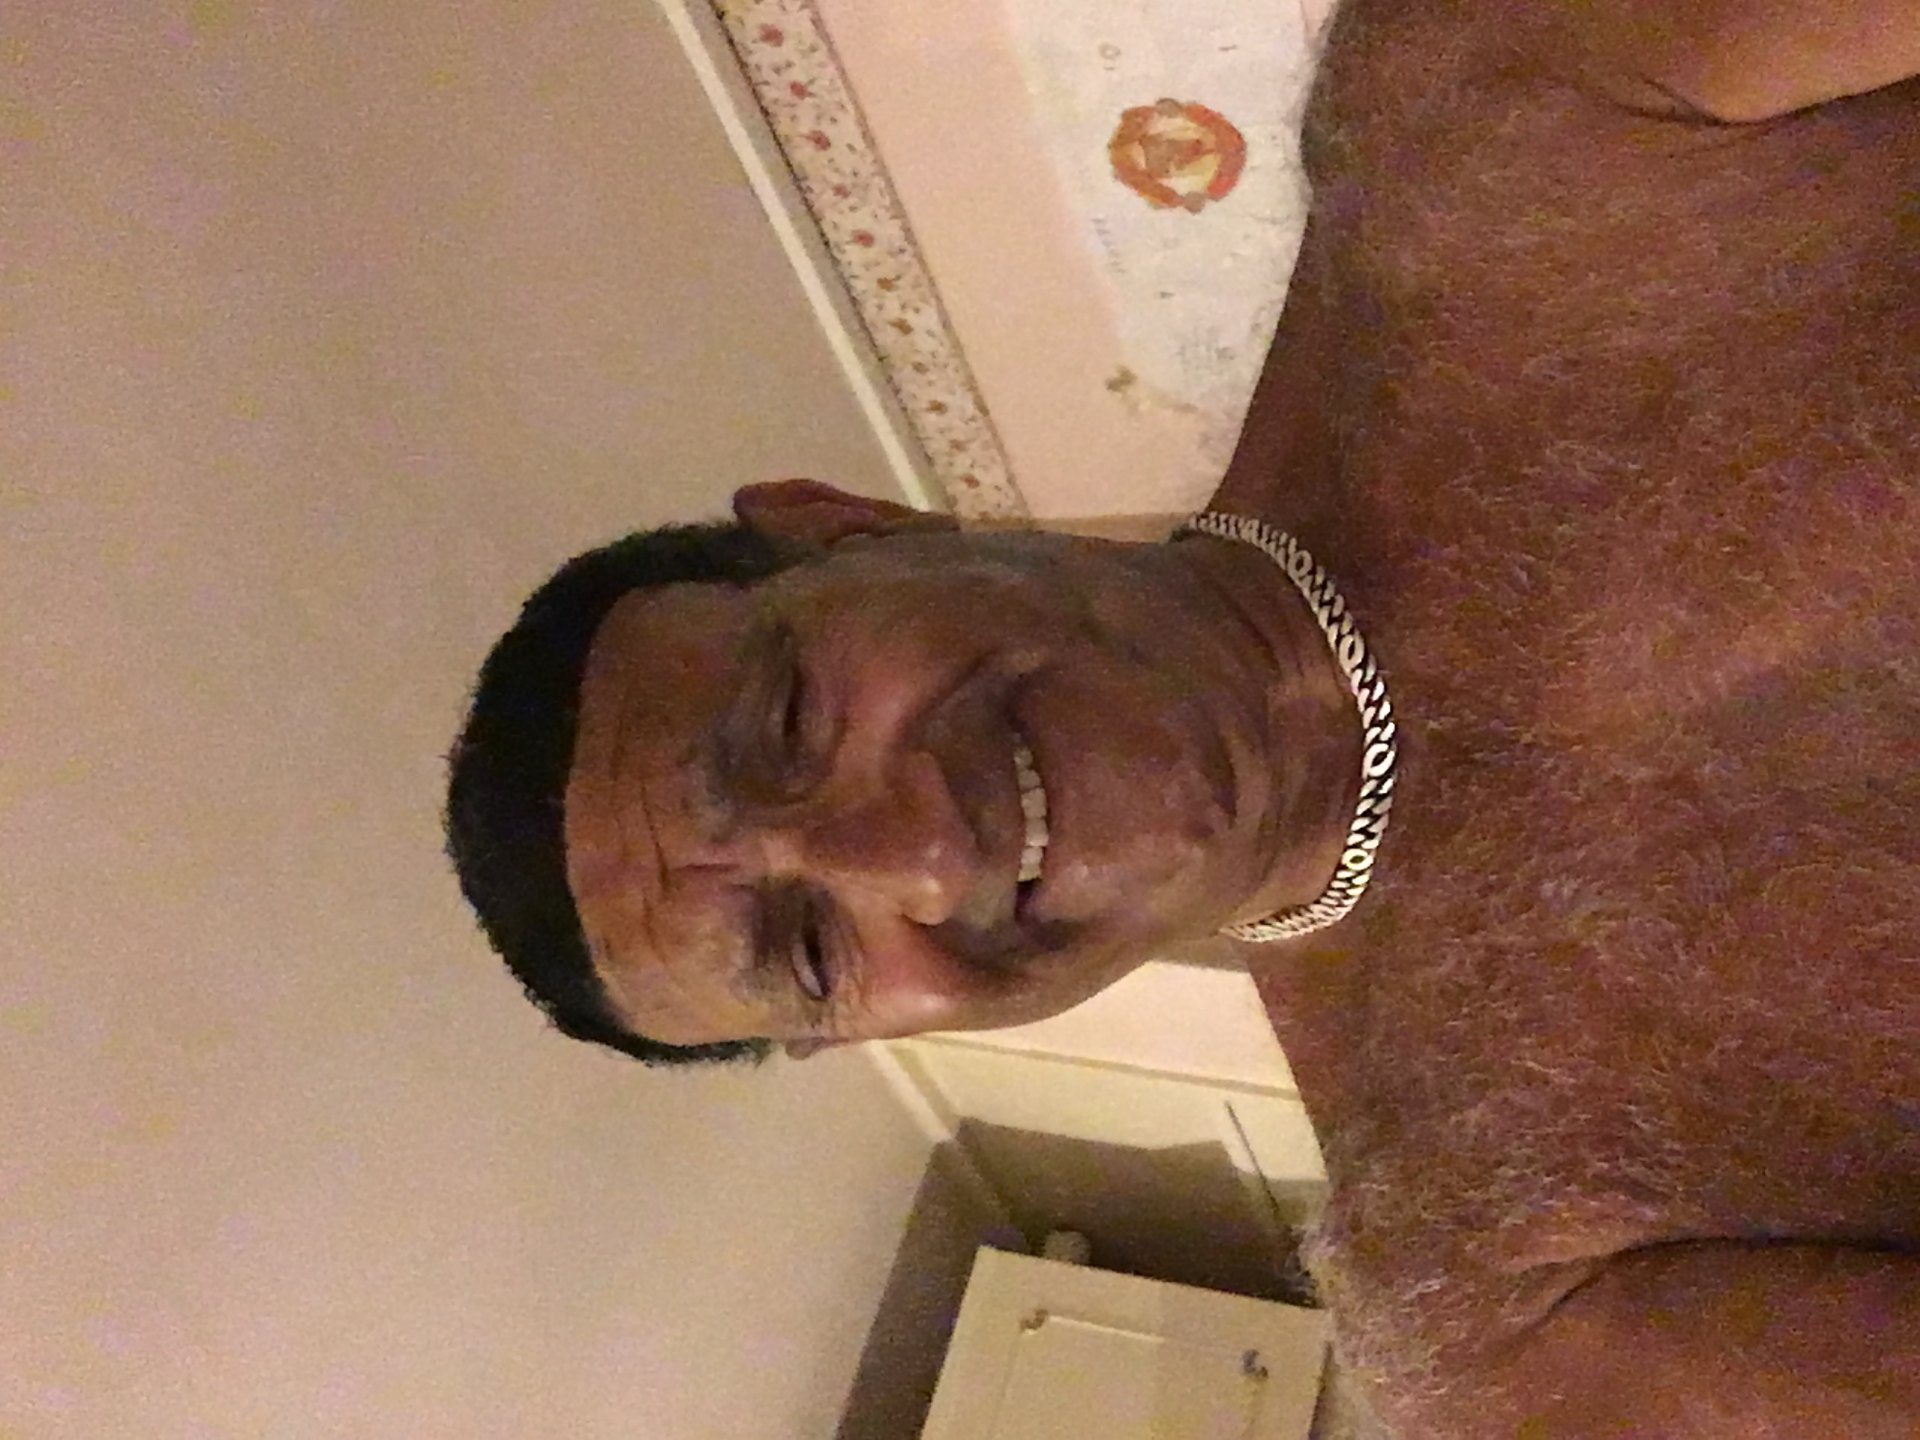 Zoltan112 from Greater London,United Kingdom